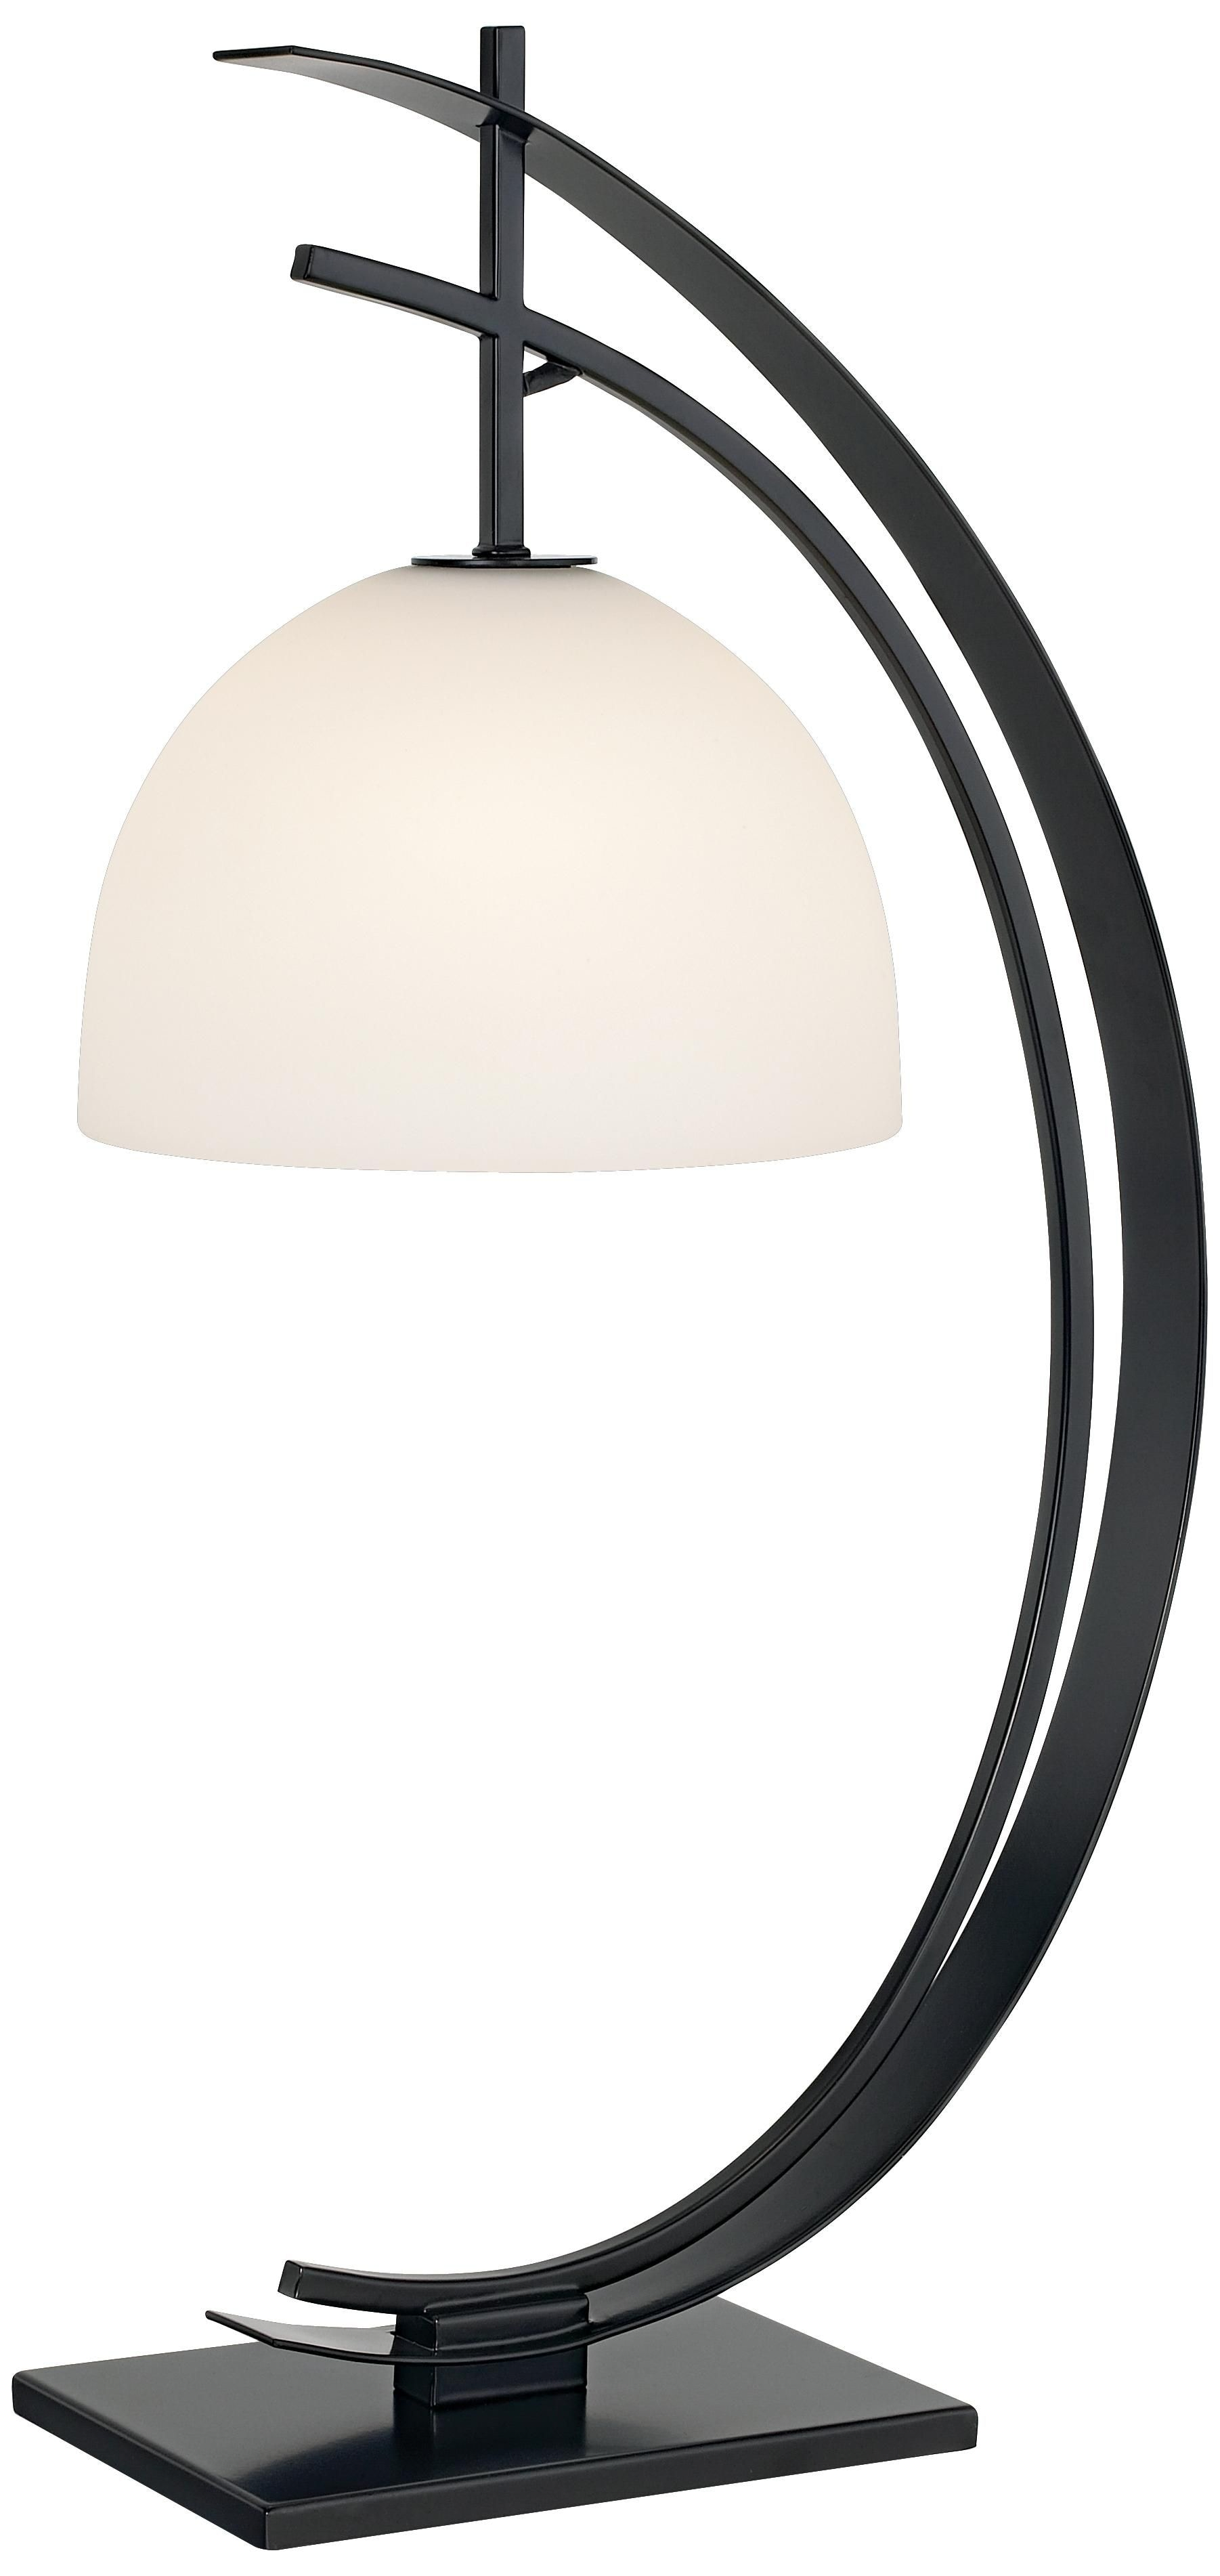 Elegant Kathy Ireland Home By Pacific Coast Lighting Orbit Table Lamp 87 1242 07